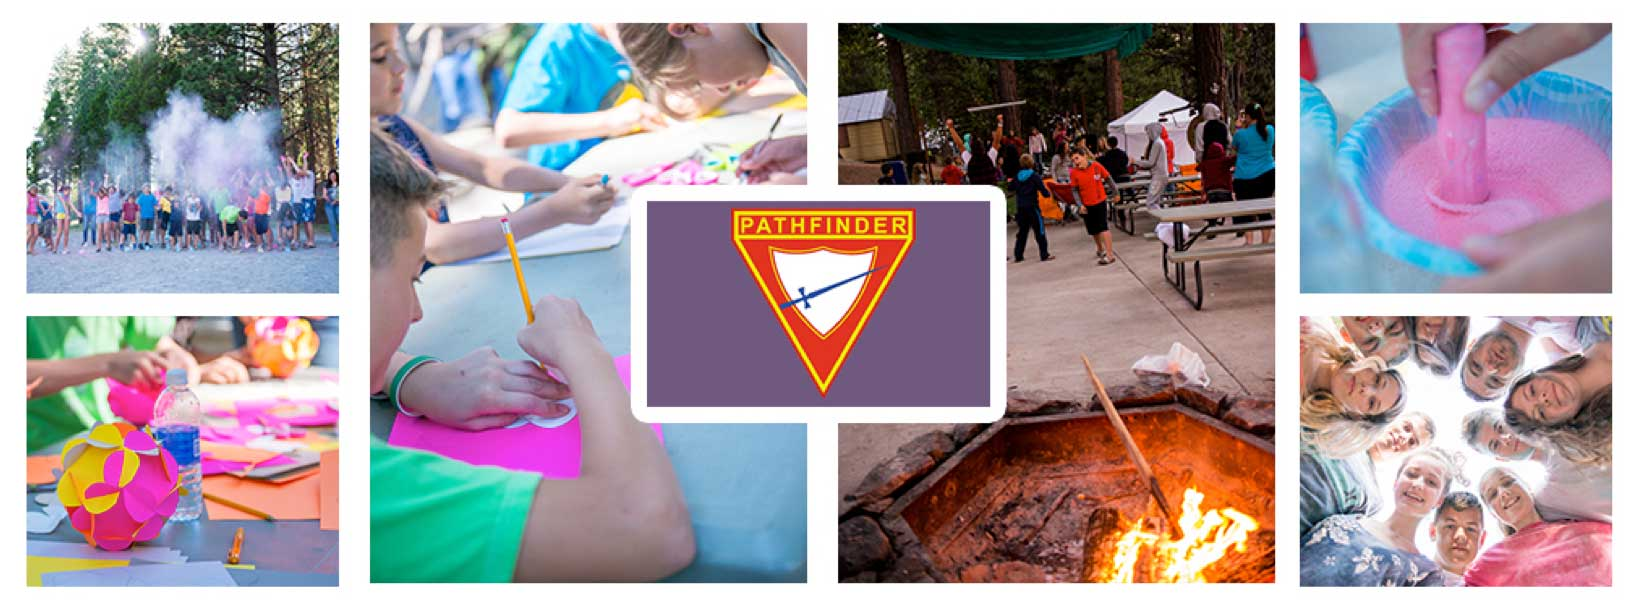 Pathfinders Camps